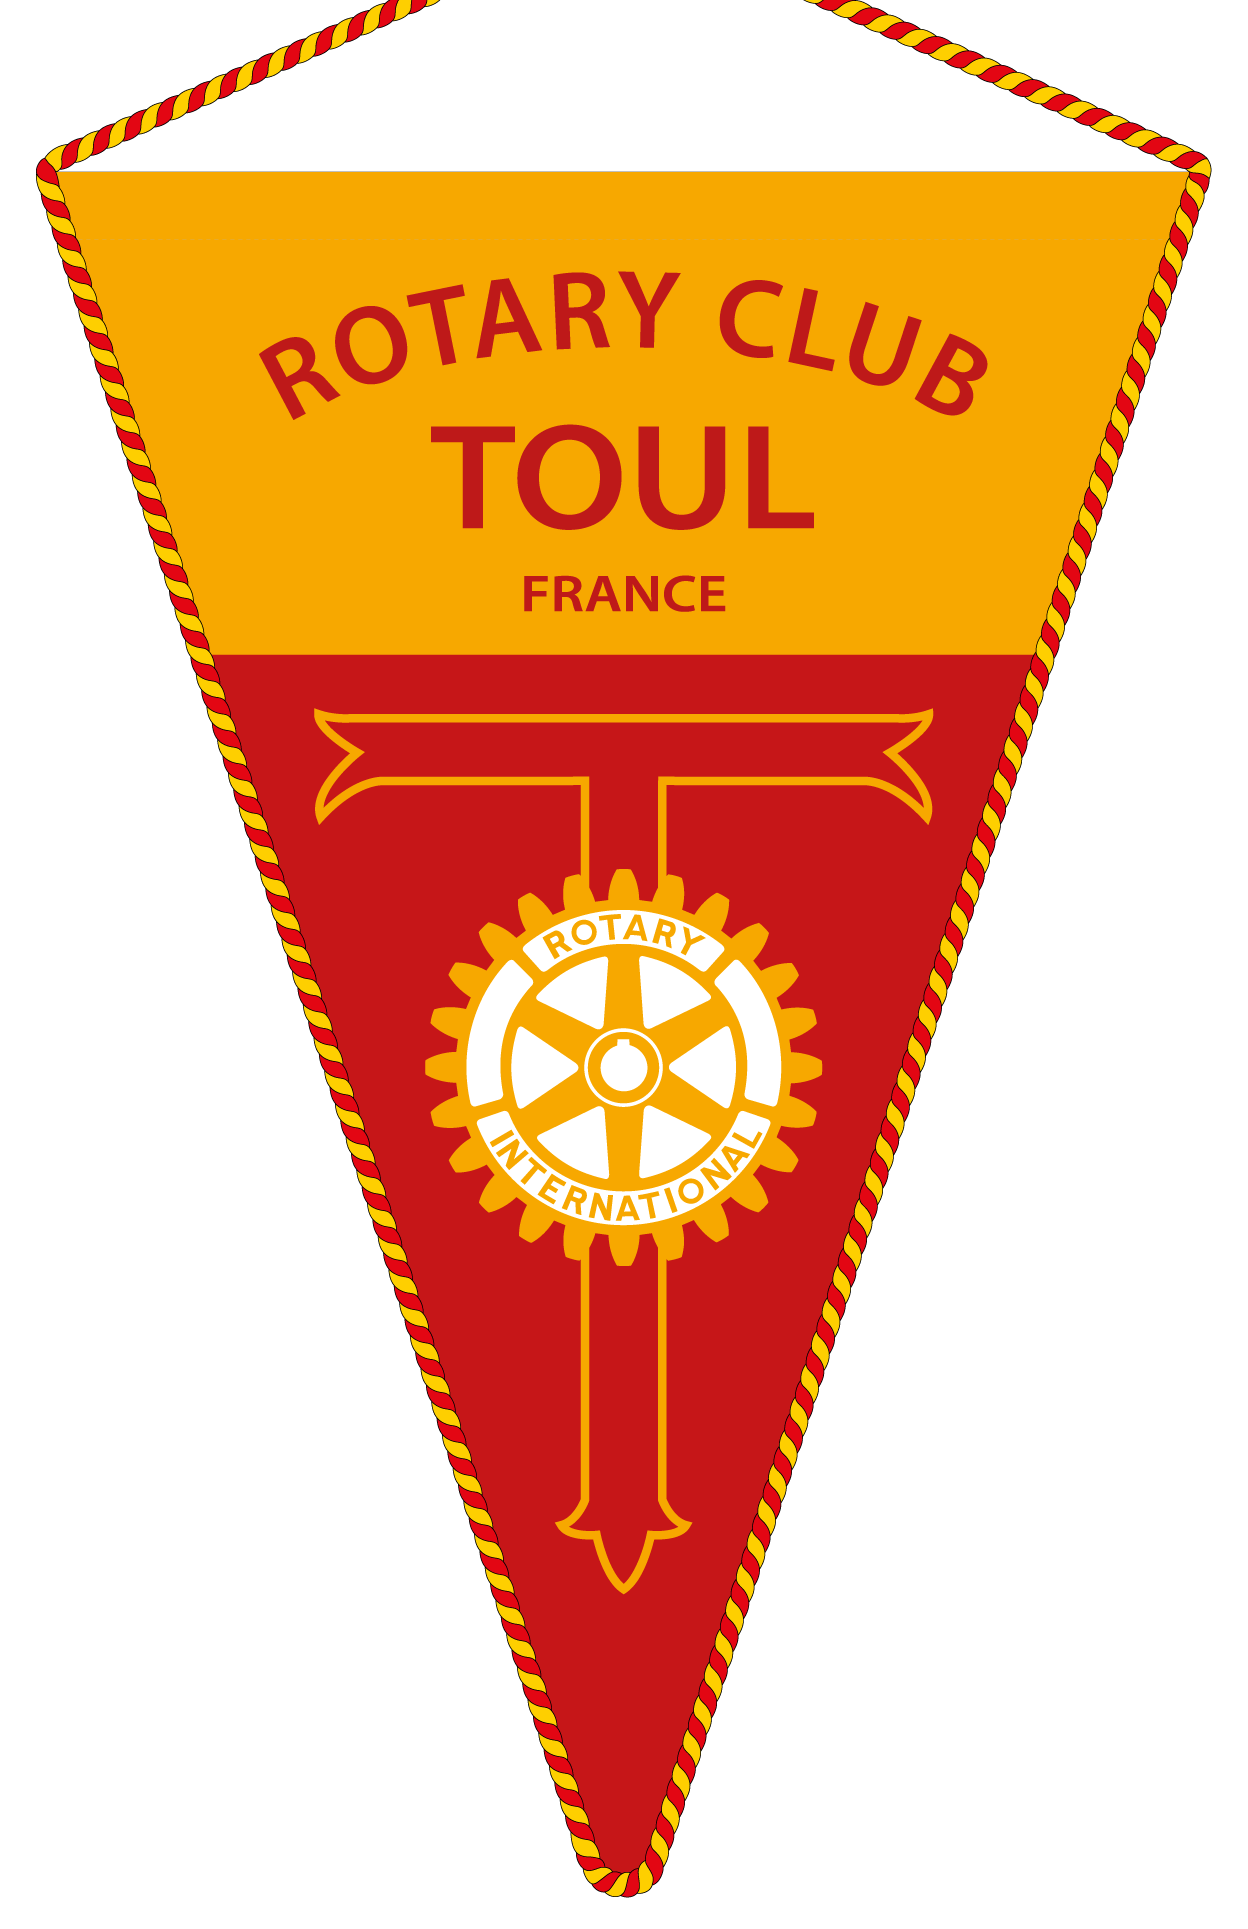 FANION ROTARY CLUB TOUL